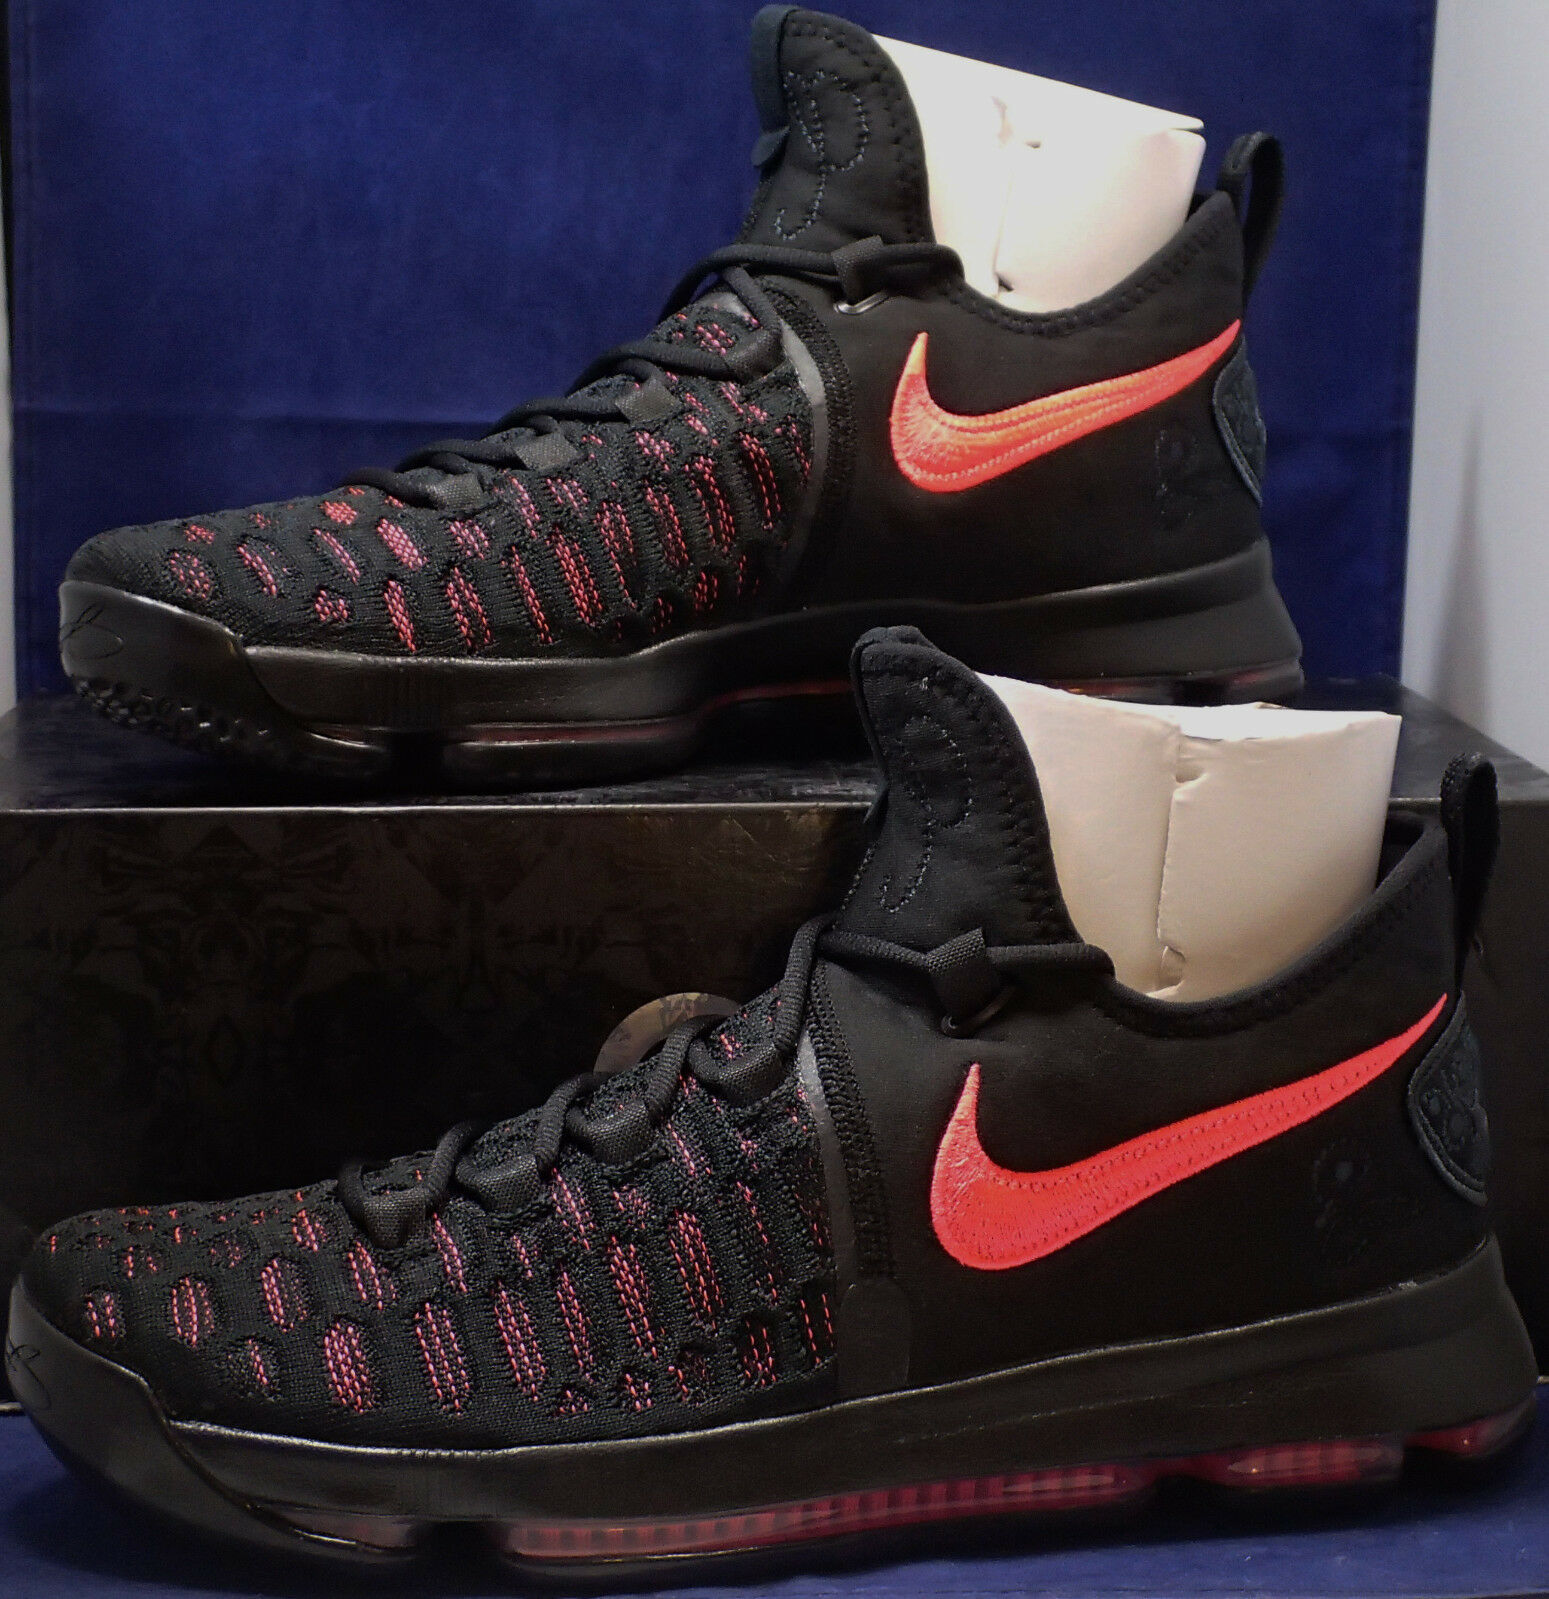 Nike Zoom KD 9 IX Premium Aunt Aunt Aunt Pearl Breast Cancer Awareness SZ 10.5 881796-060 166c8f